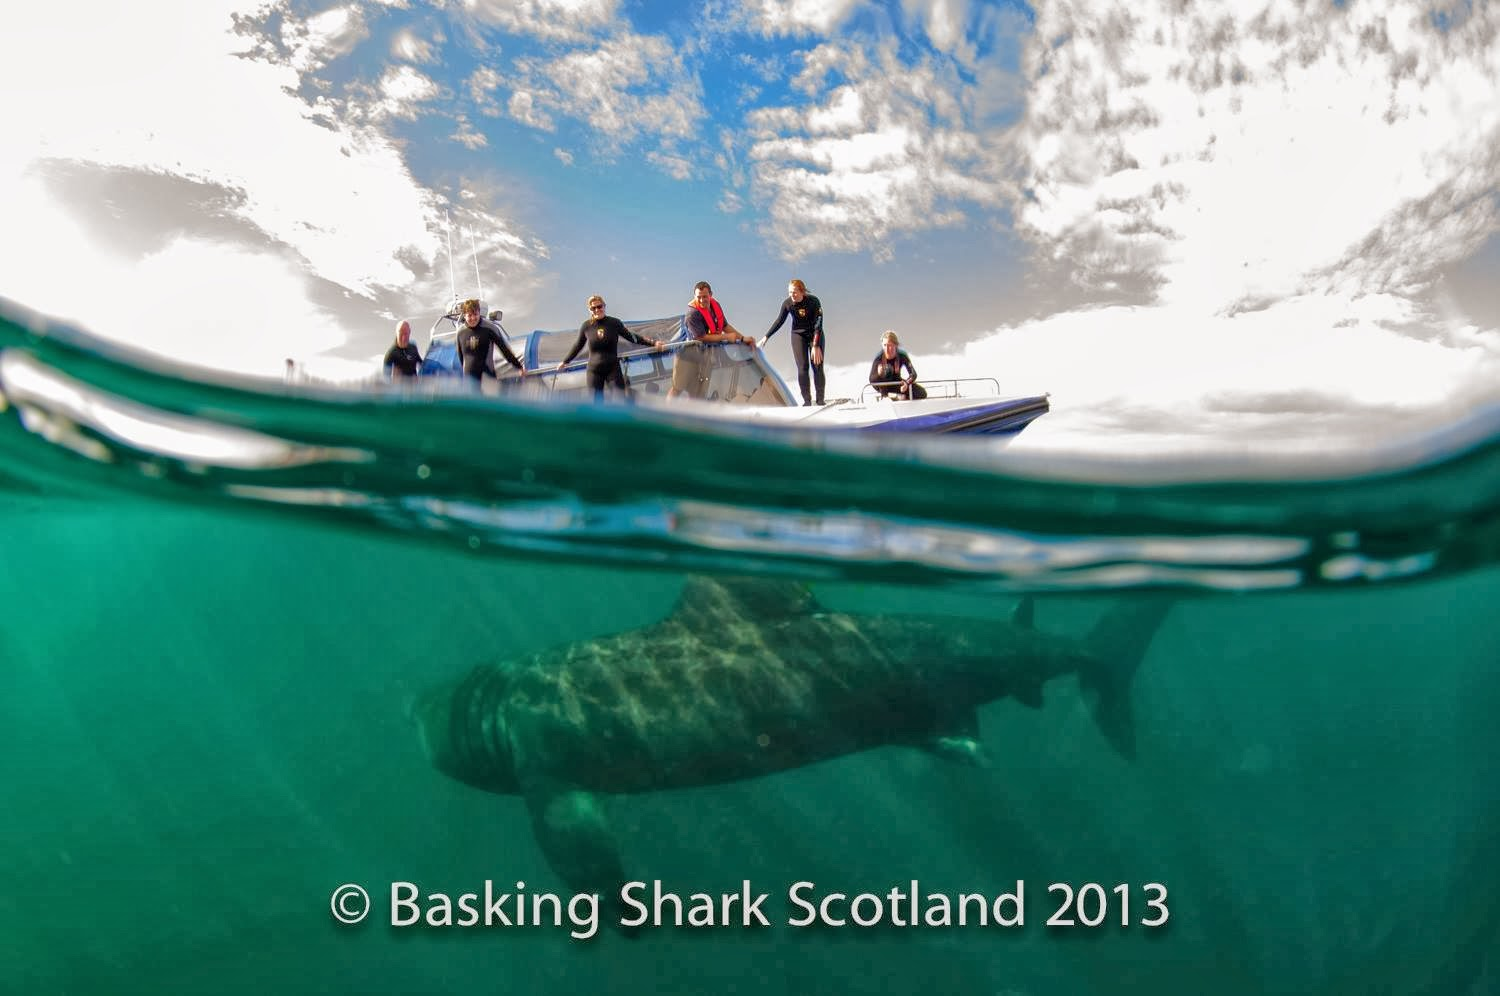 Swimming with Basking Sharks in Scotland